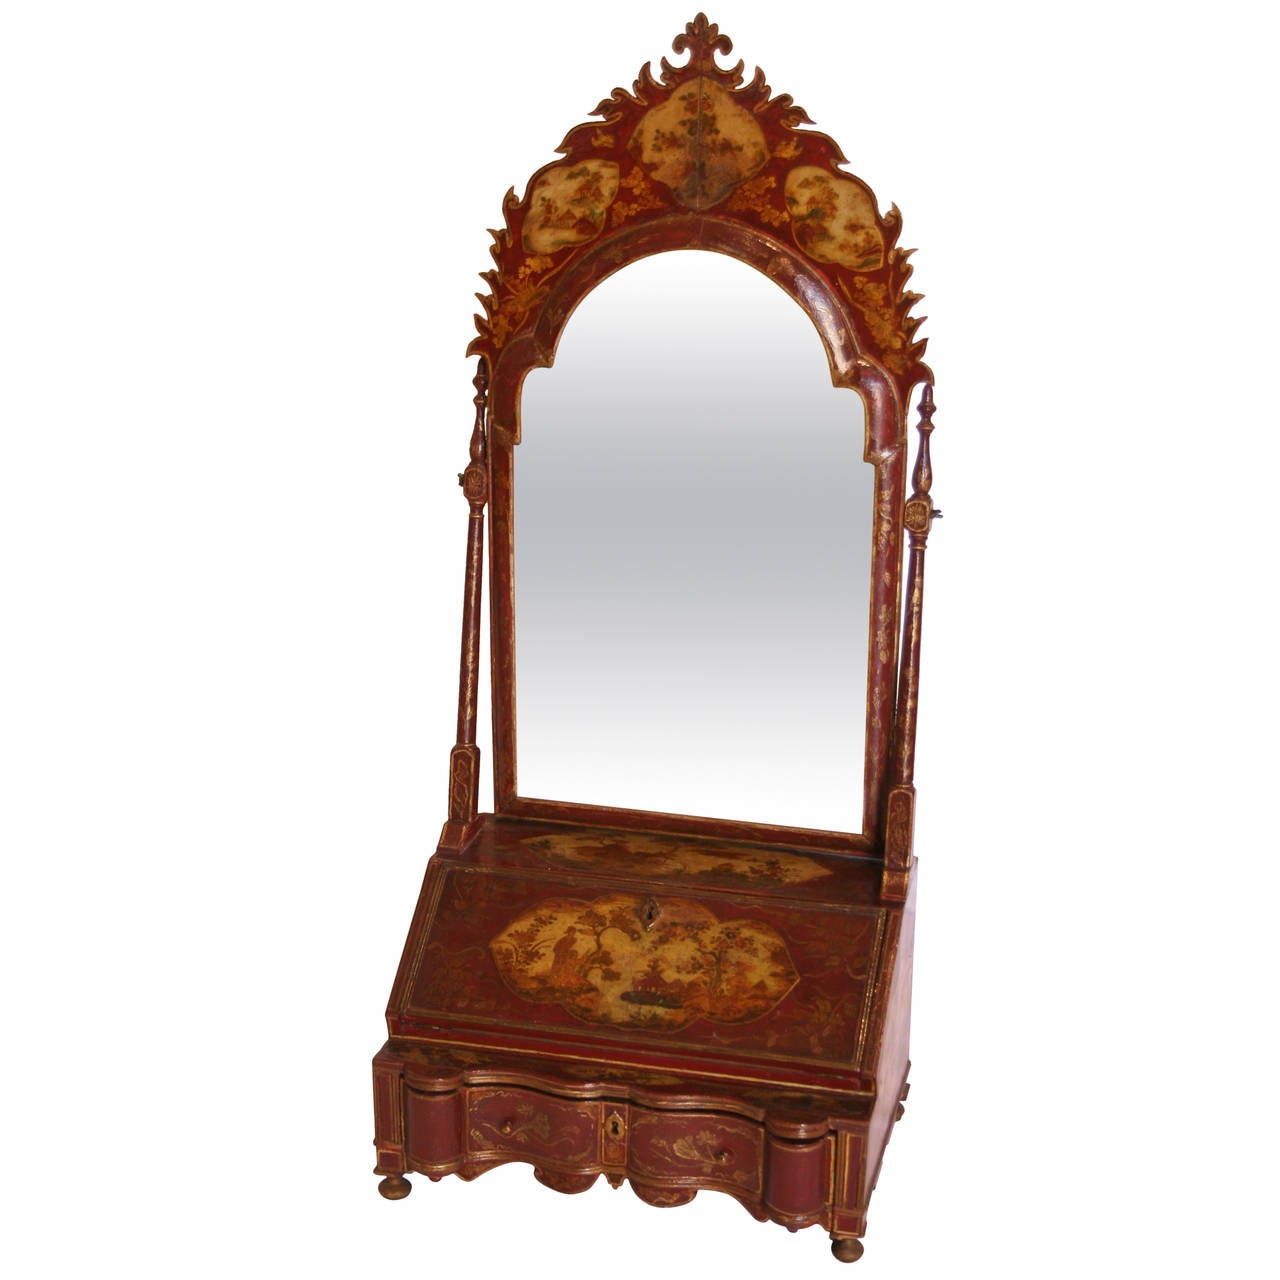 18th century english small bedroom furniture at 1stdibs Century bedroom furniture